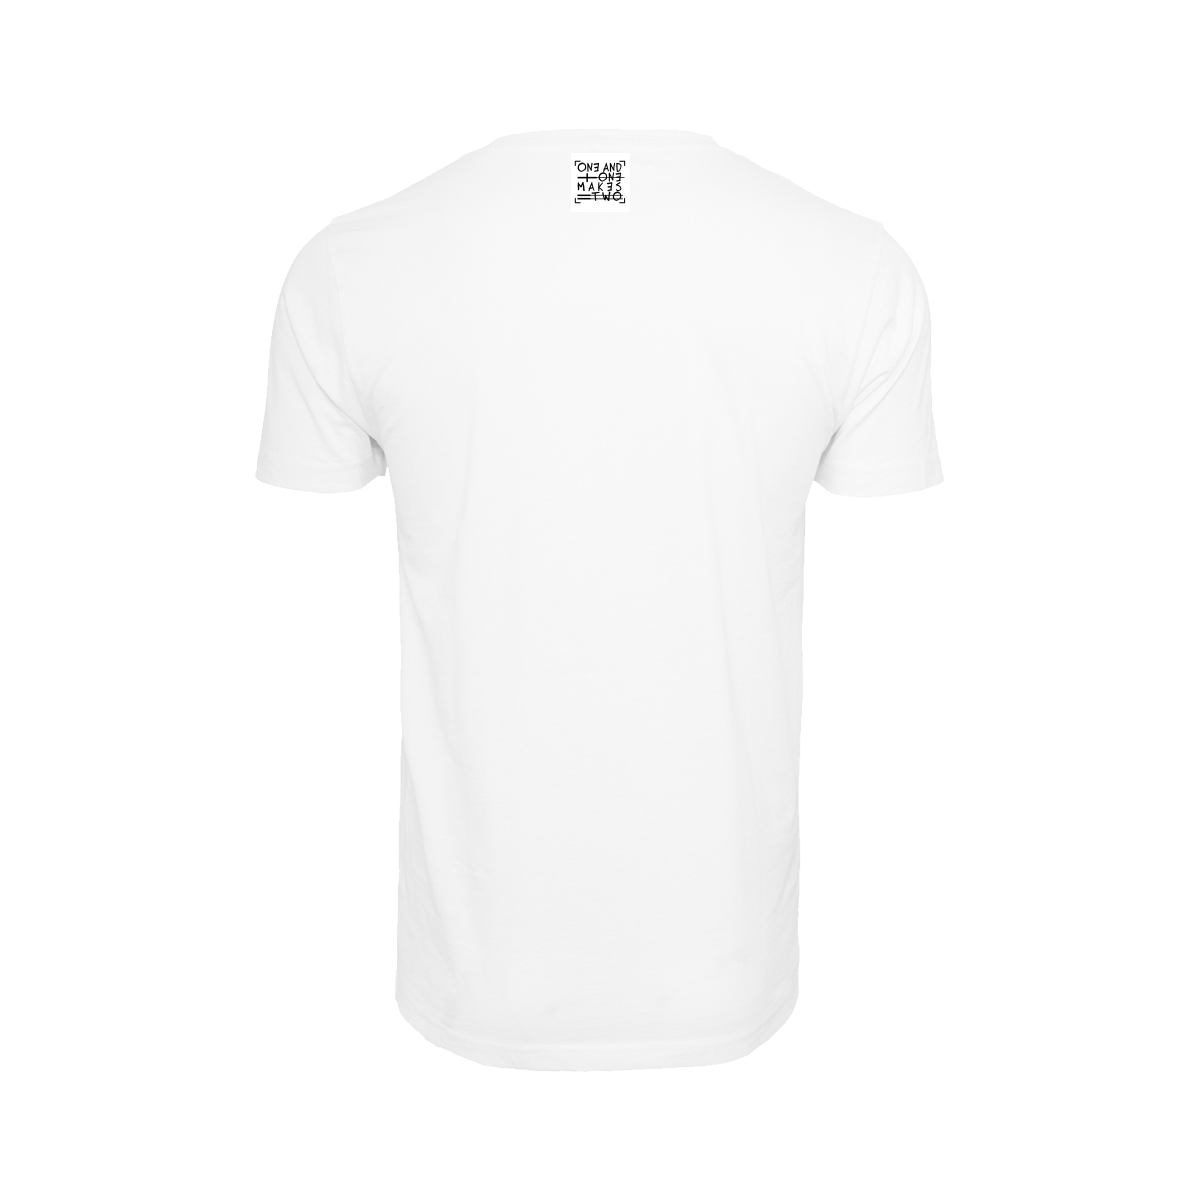 ONE AND ONE MAKES TWO - T-shirt - WHT back - Frank Willems